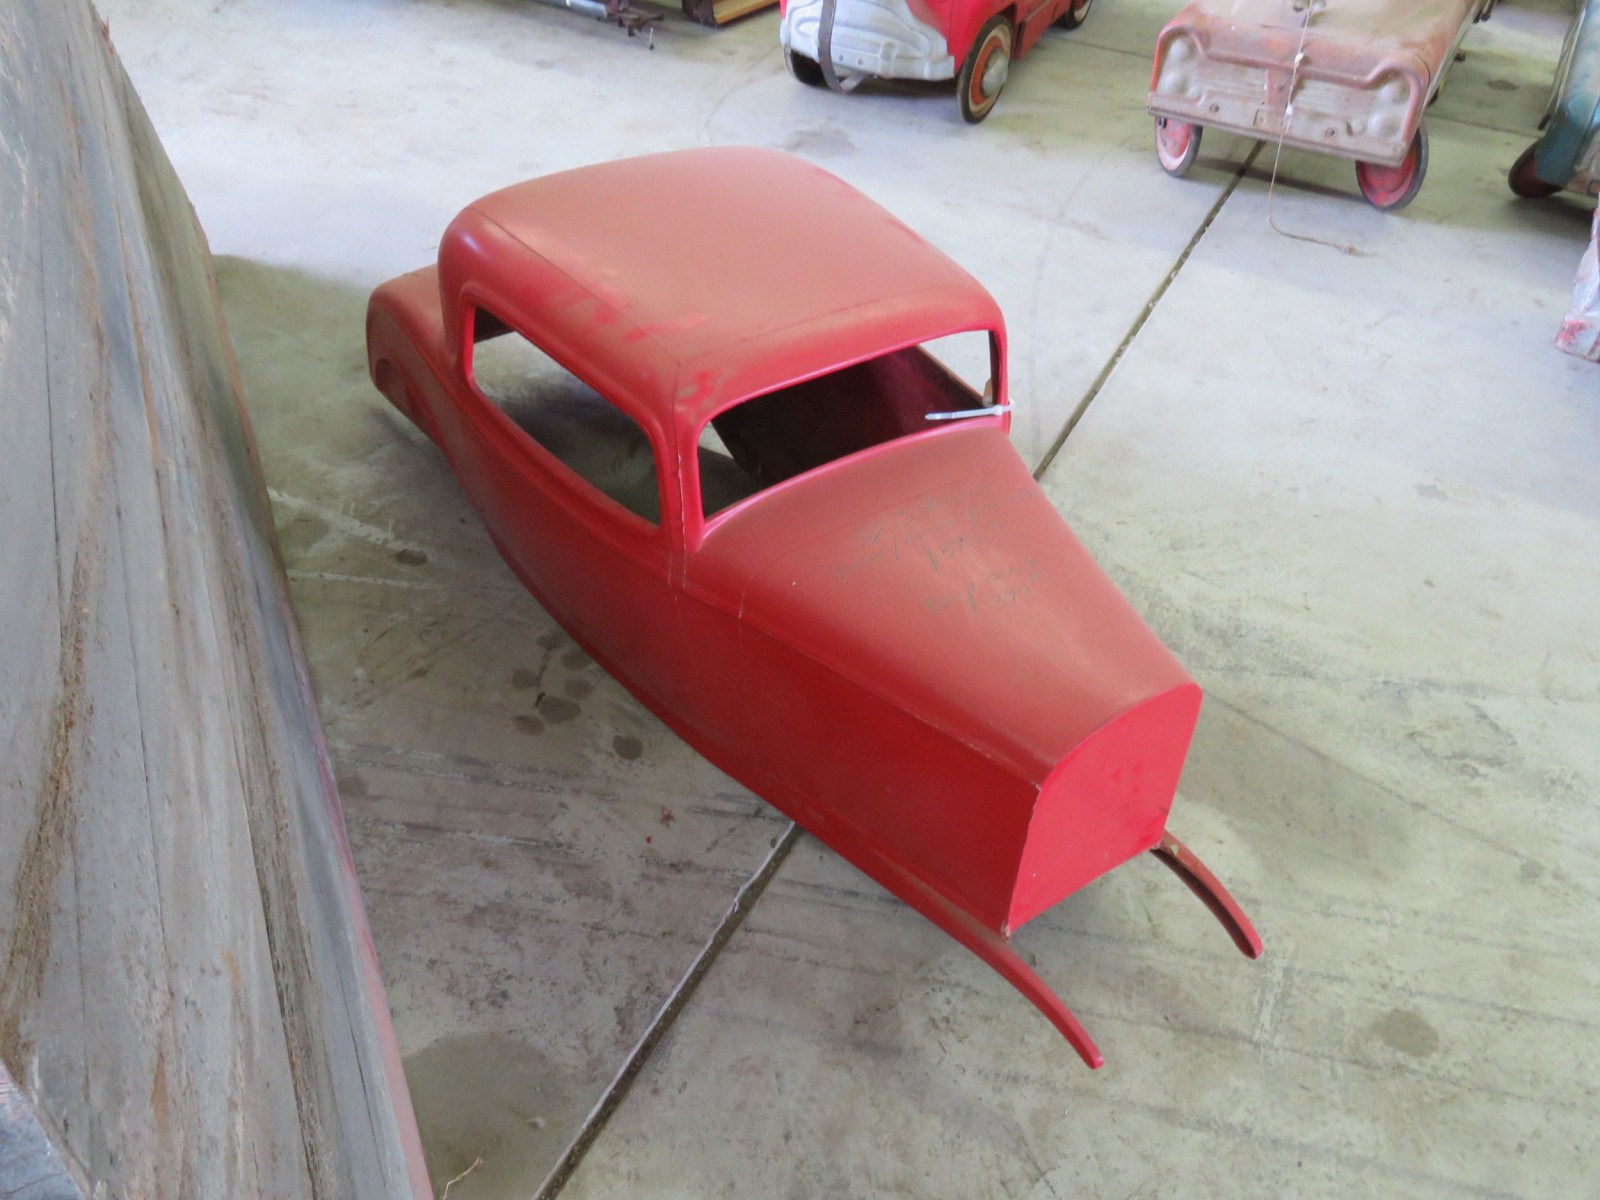 Fiberglass 1932 Ford Coupe Body for Pedal Car - Image 2